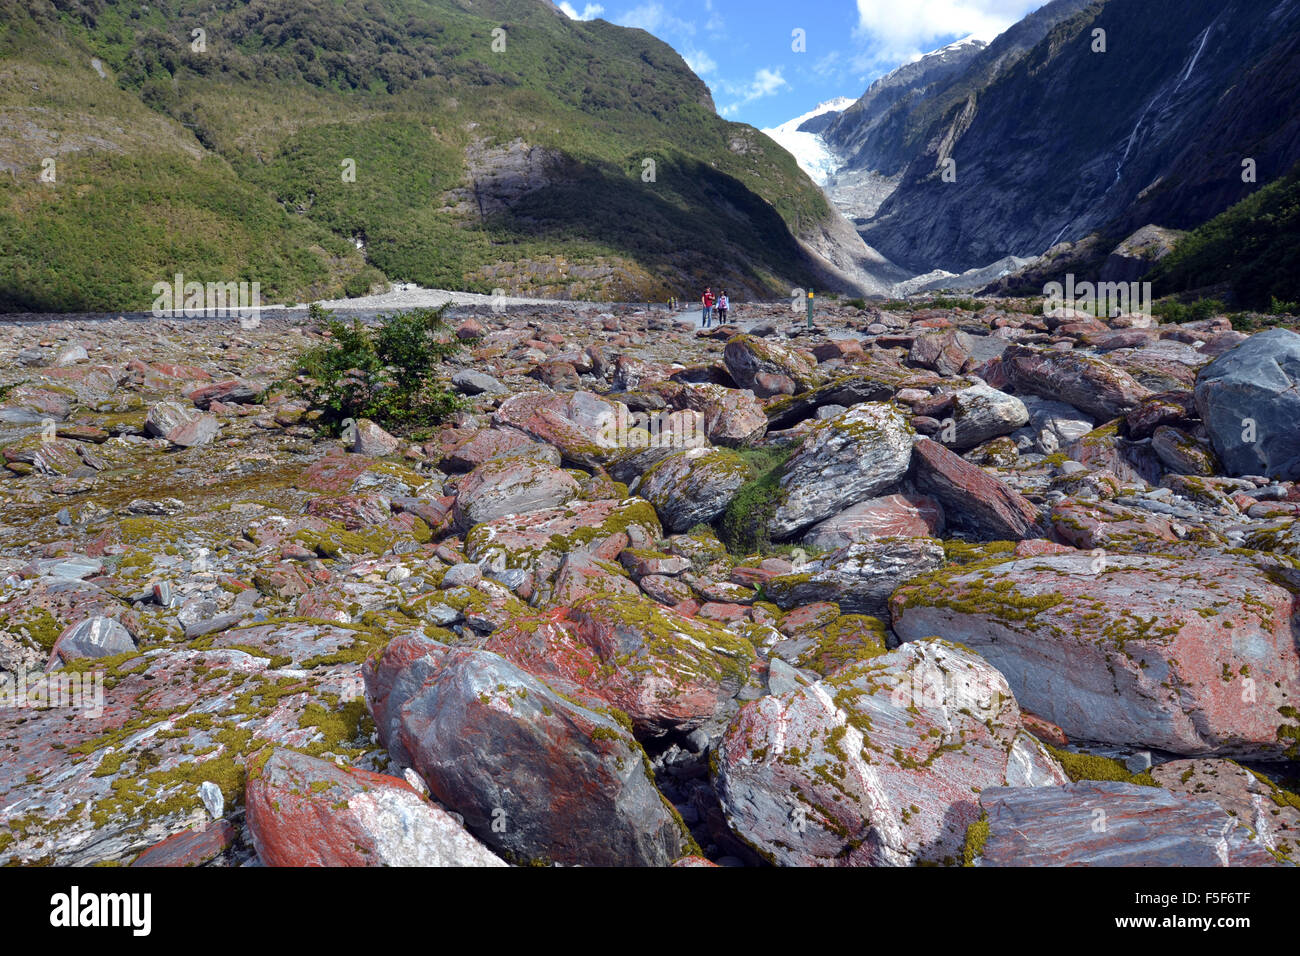 Rocks at Franz Josef Glacier, a glacier melting due to climate change, Franz Josef, South Island, New Zealand - Stock Image